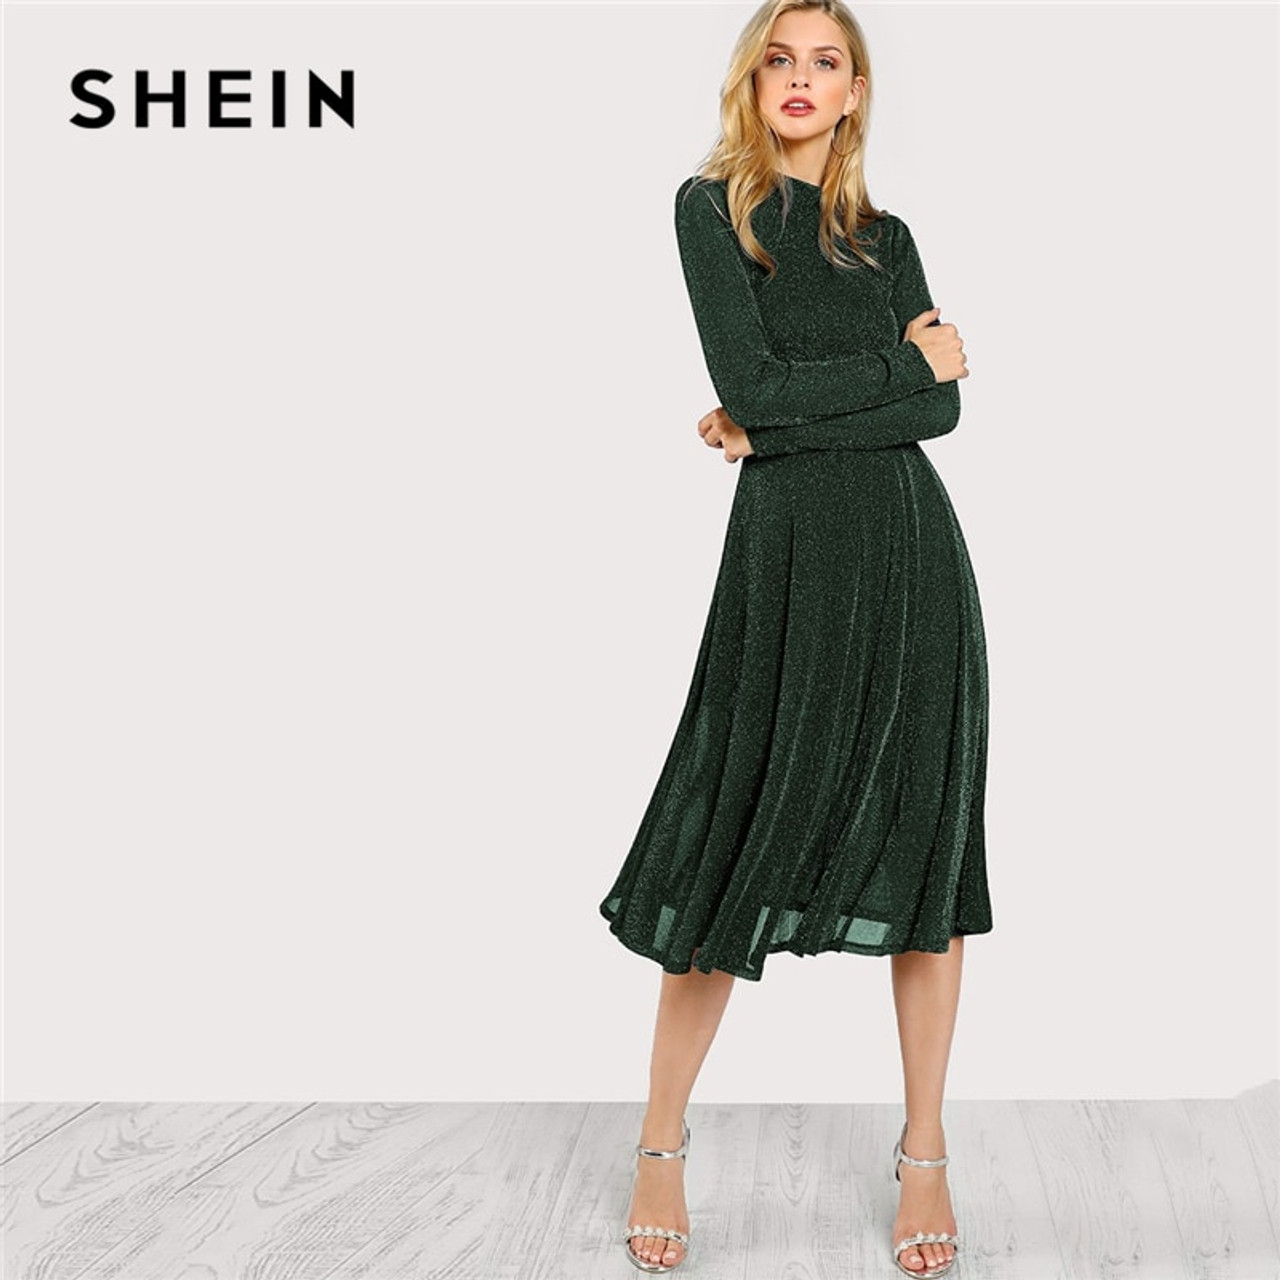 0e331e319c SHEIN Green Elegant Party Mock Neck Glitter Button Fit And Flare Solid  Natural Waist Dress 2018 ...